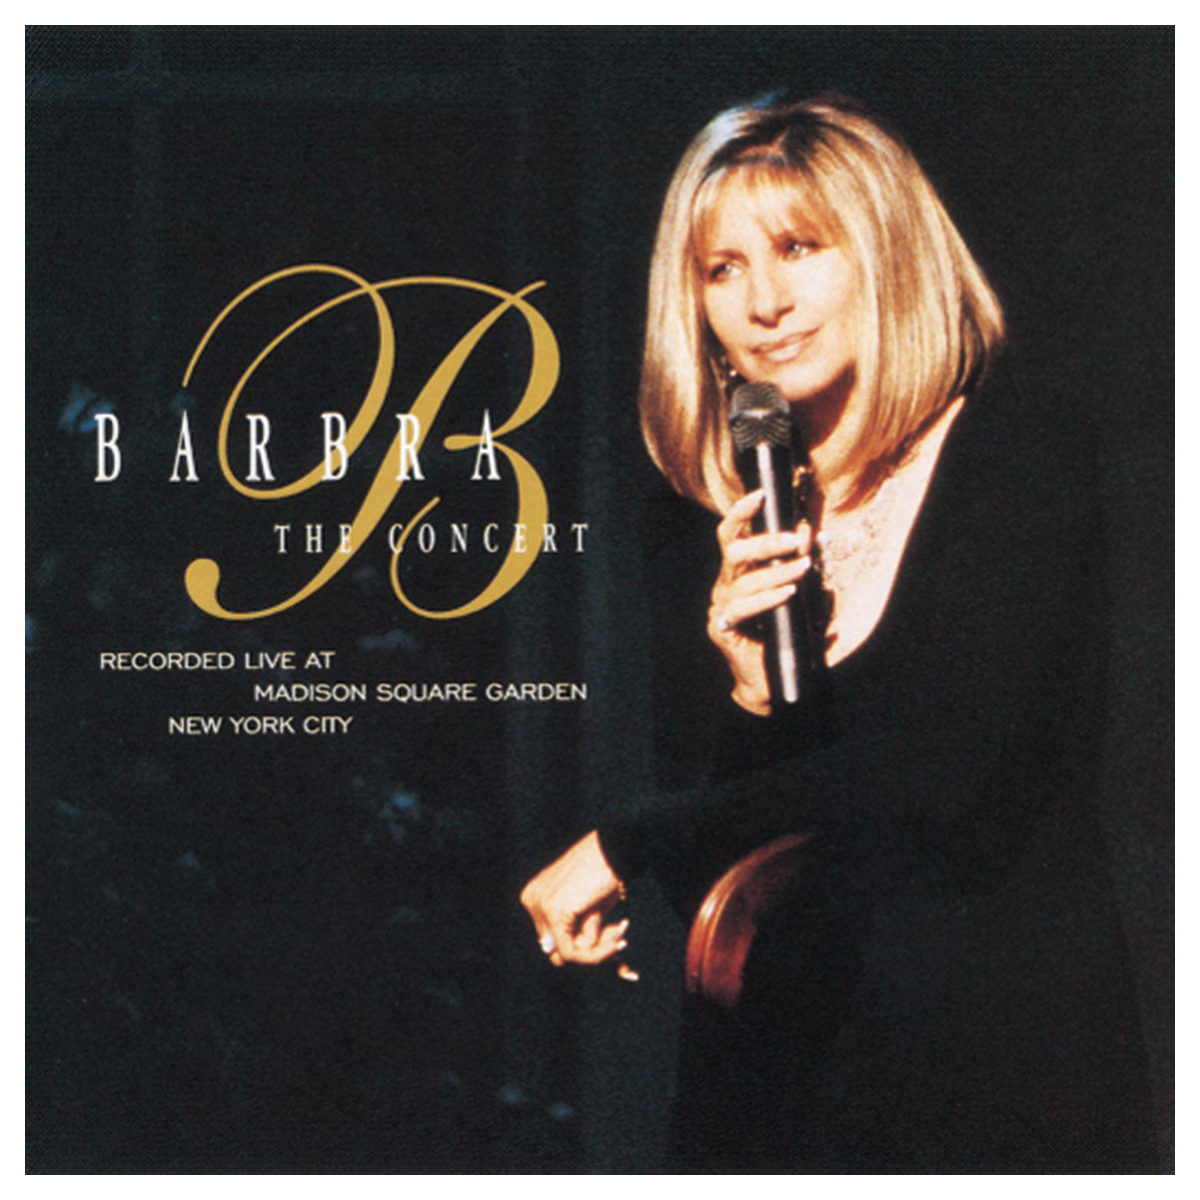 The Concert CD